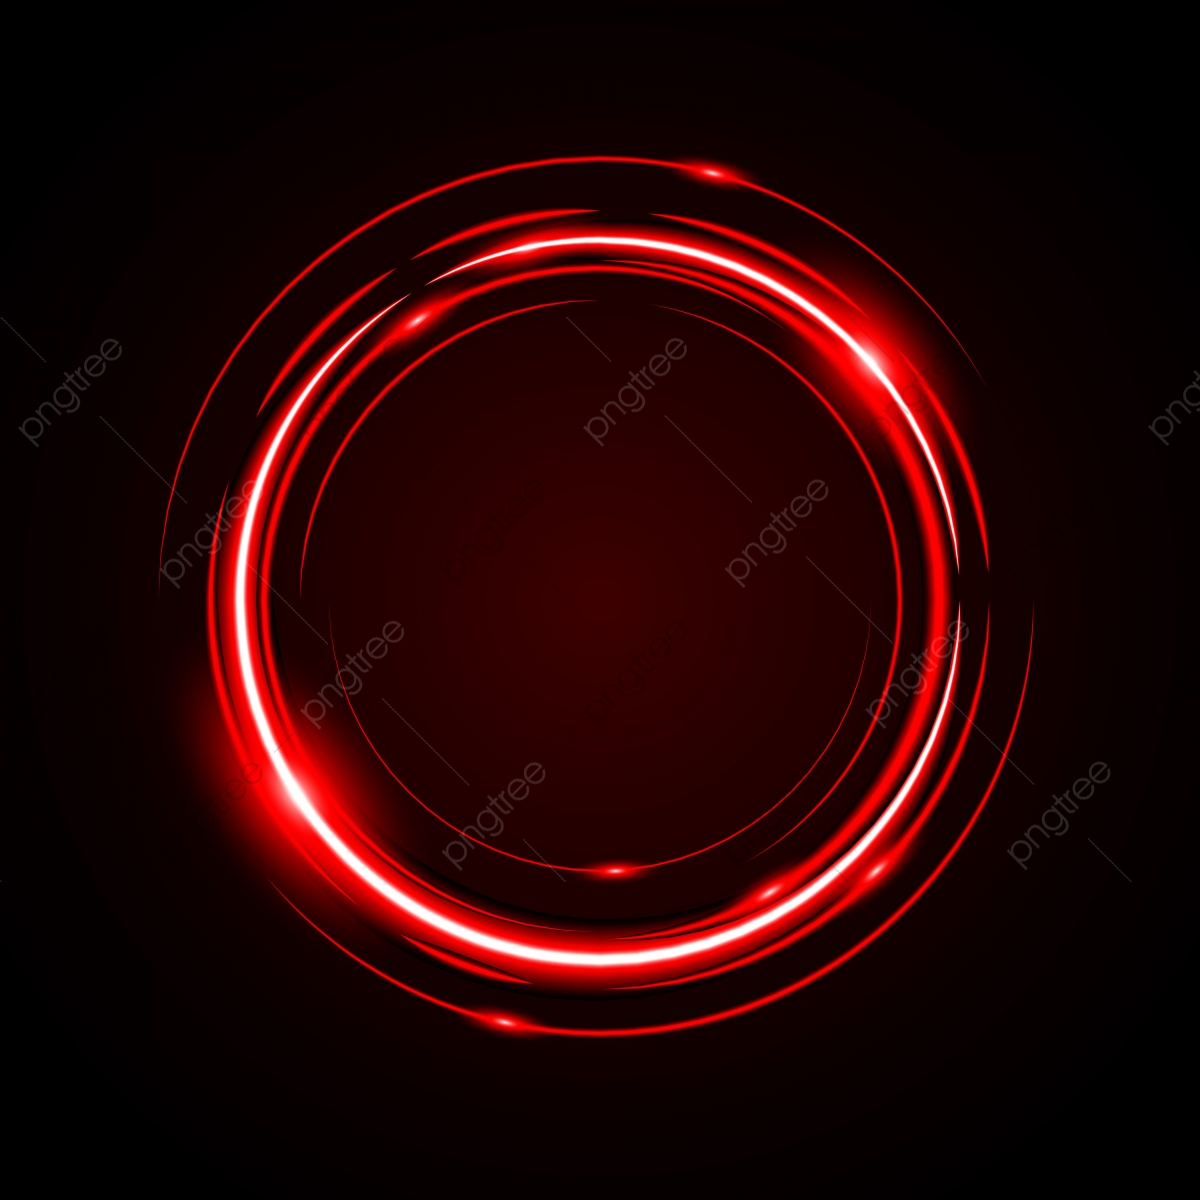 Abstract Circle Light Red Frame Vector Background, Disc, Event.